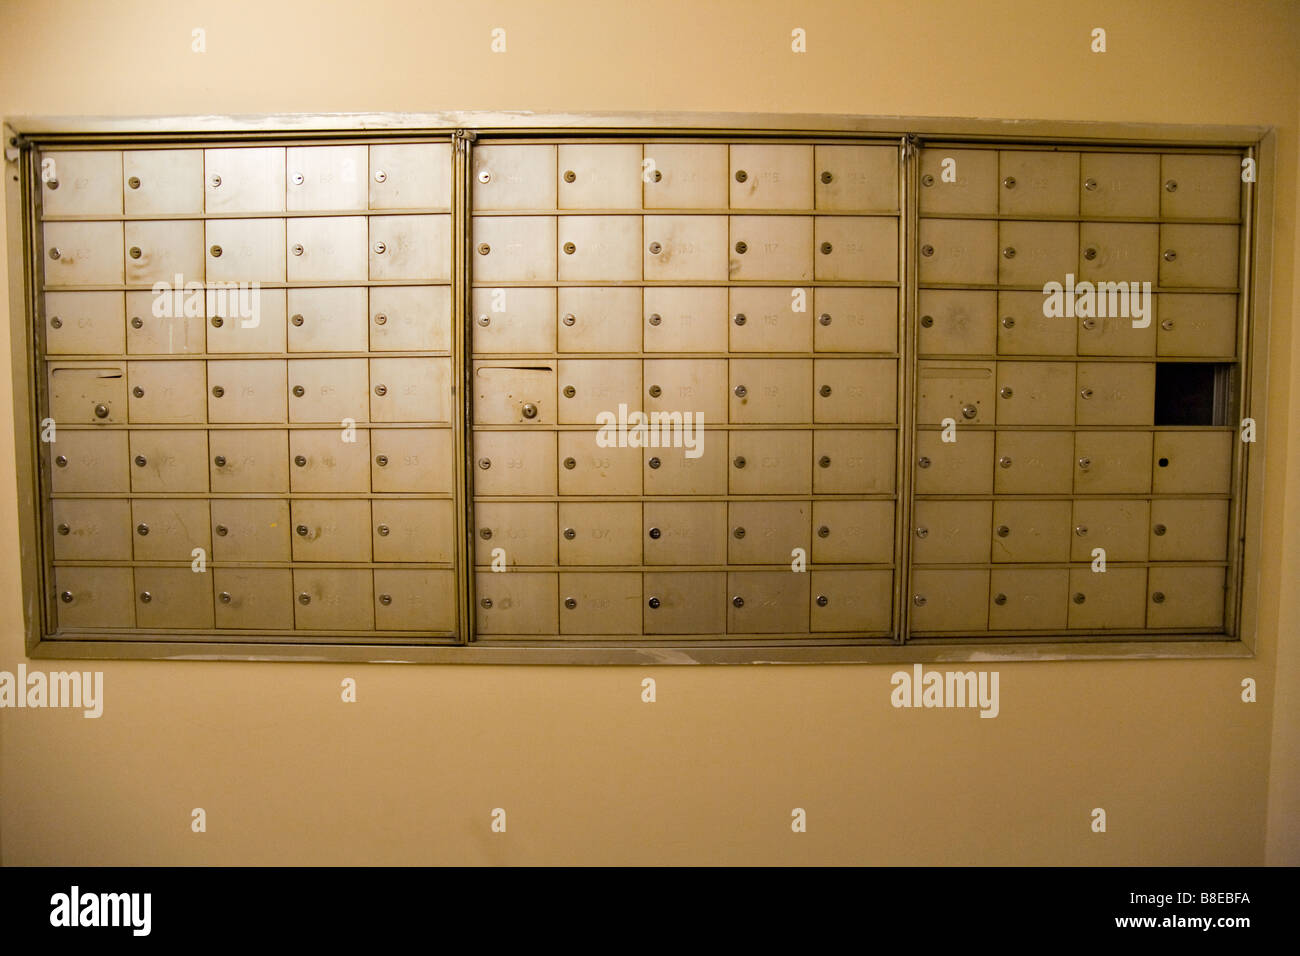 Mailboxes in an apartment building Stock Photo, Royalty Free Image ...